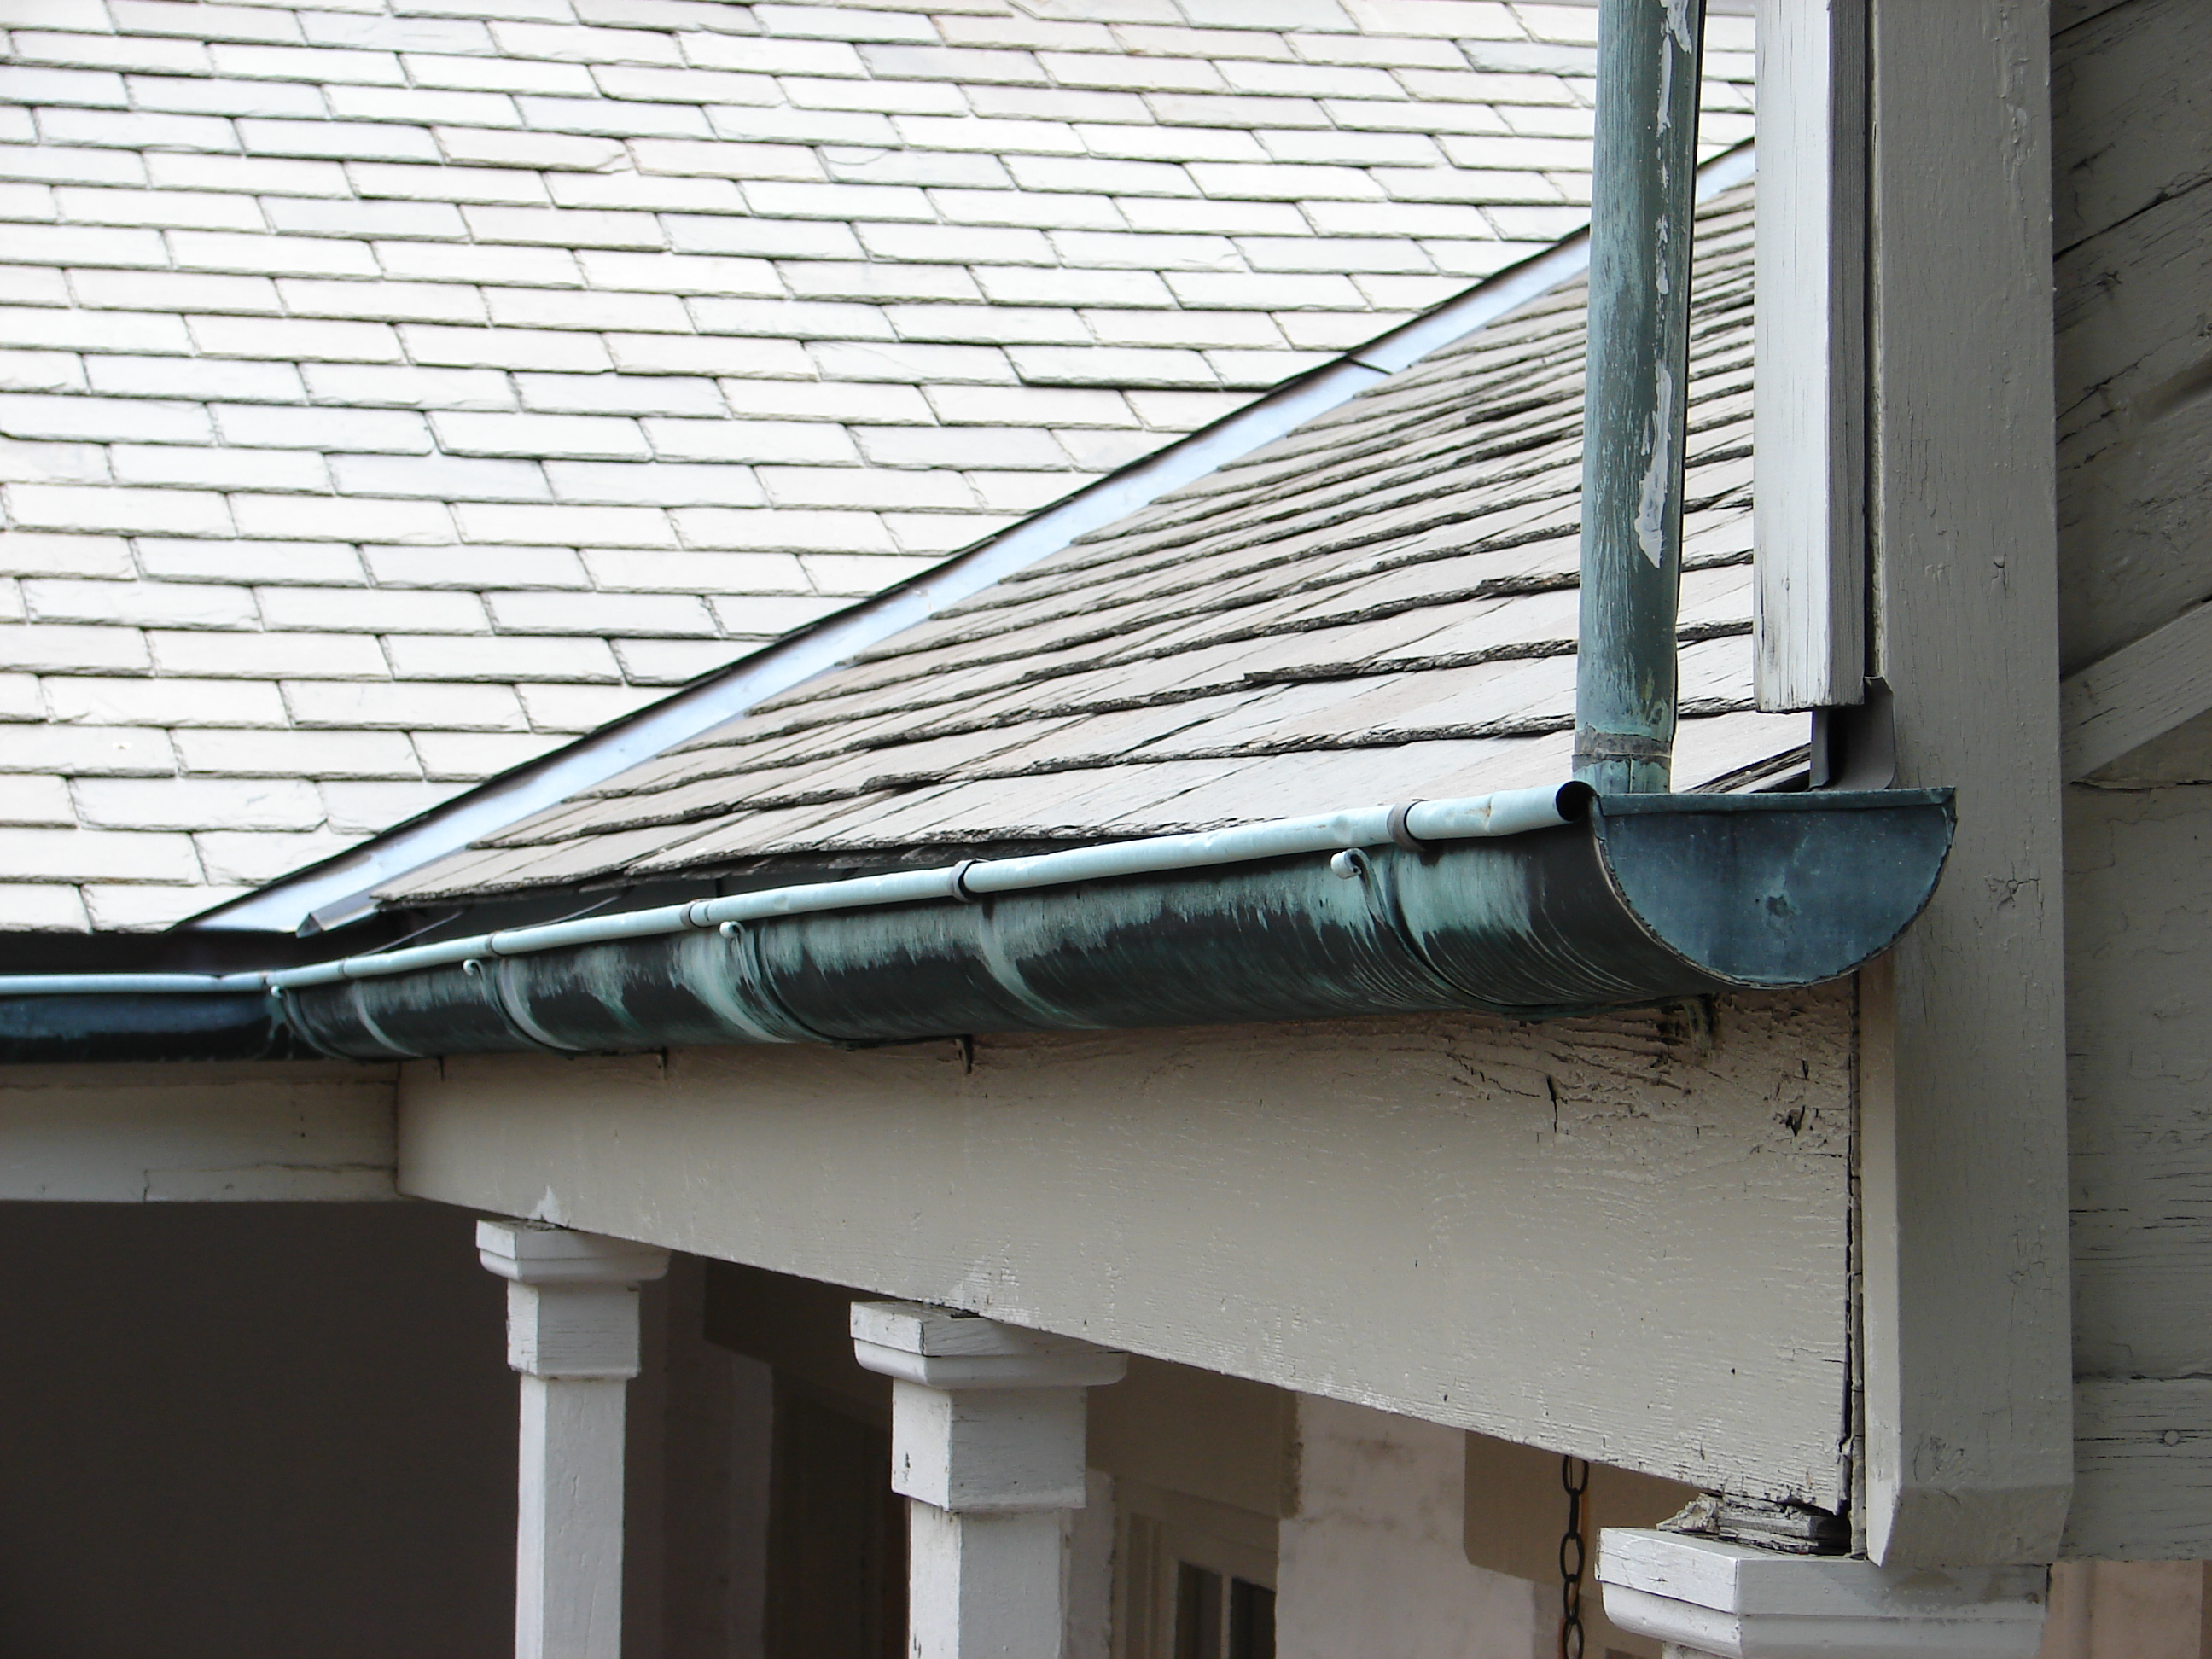 File:Gutter 1850s House New Orleans.jpg - Wikimedia Commons